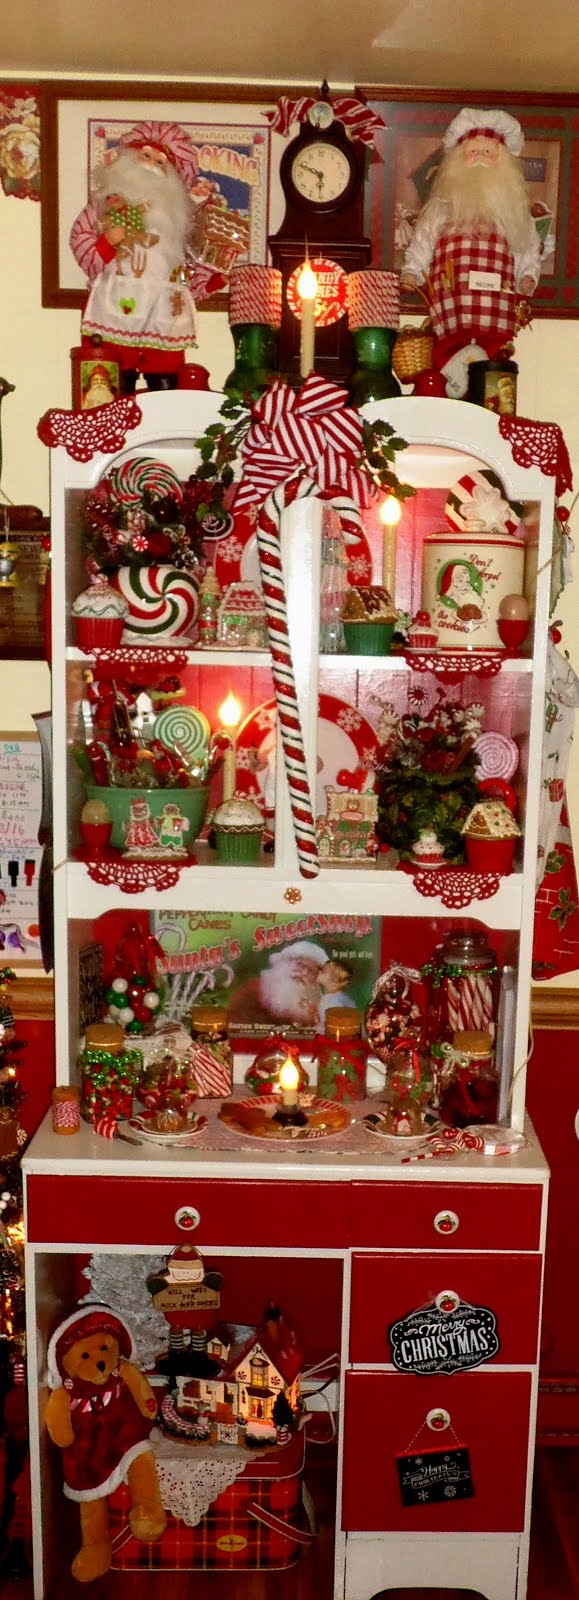 Christmas in the Kitchen, Christmas Home Tour 2015